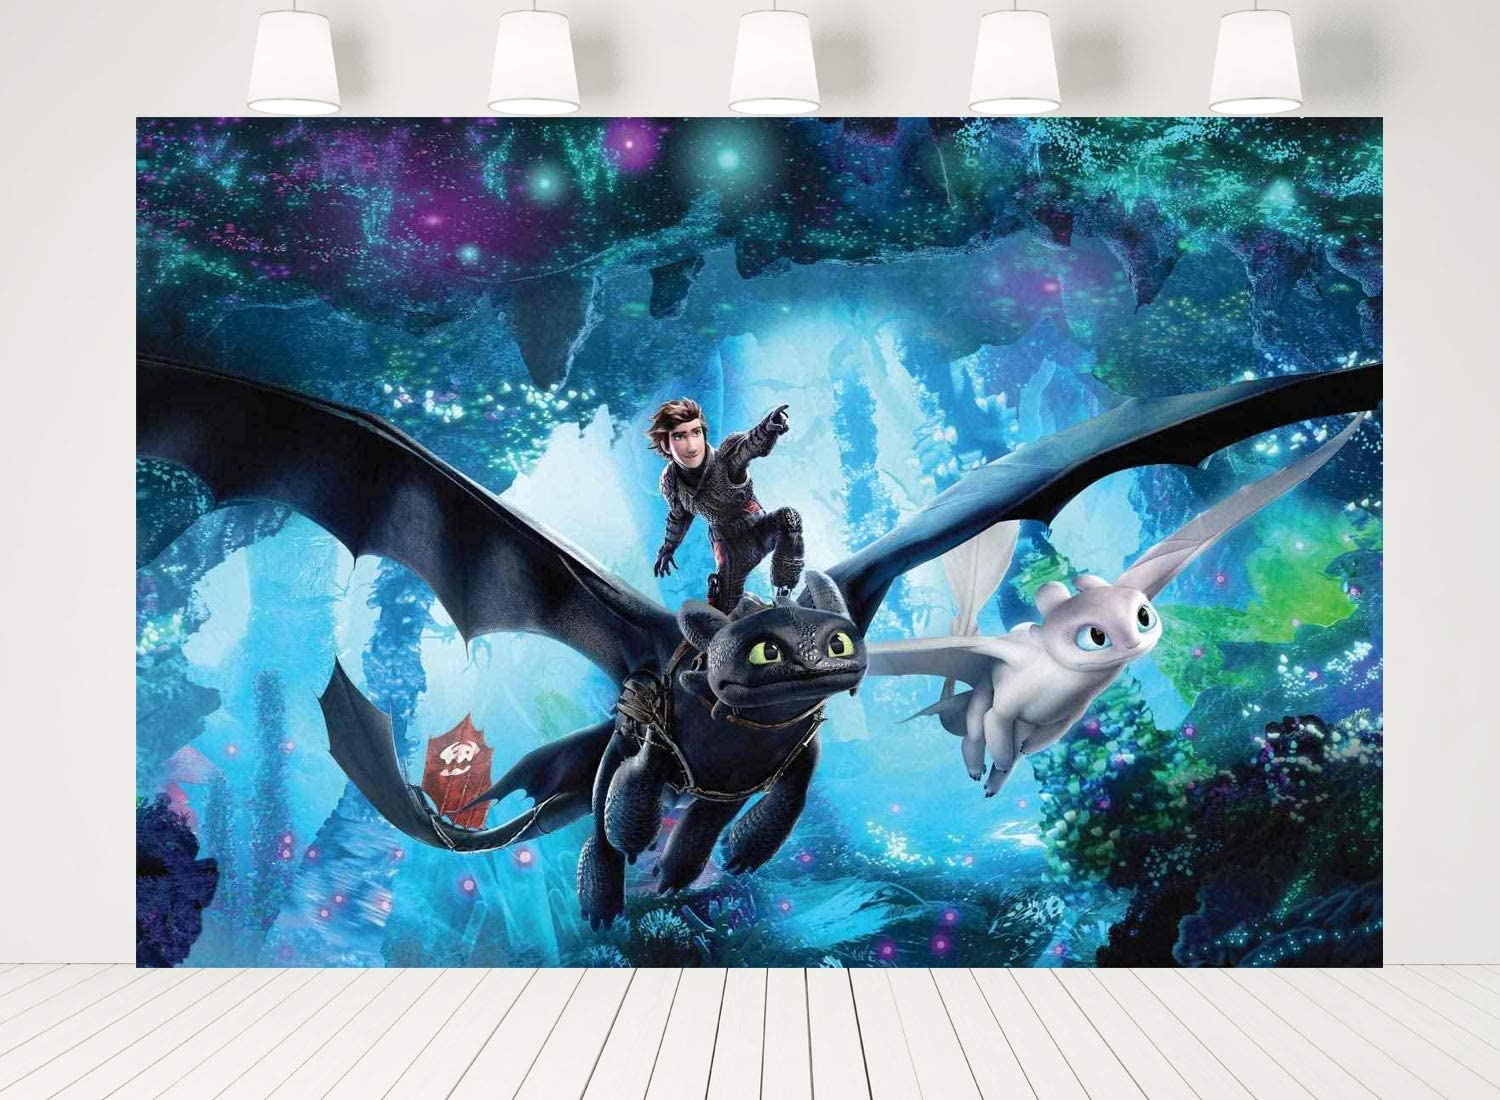 ERIC 7x5FT Vinyl How to Train Your Dragon Party Supplies Birthday Backdrop for Photography Kids Newborn Baby Shower Party Photo Background Photo Shoot Studio Prop LF067